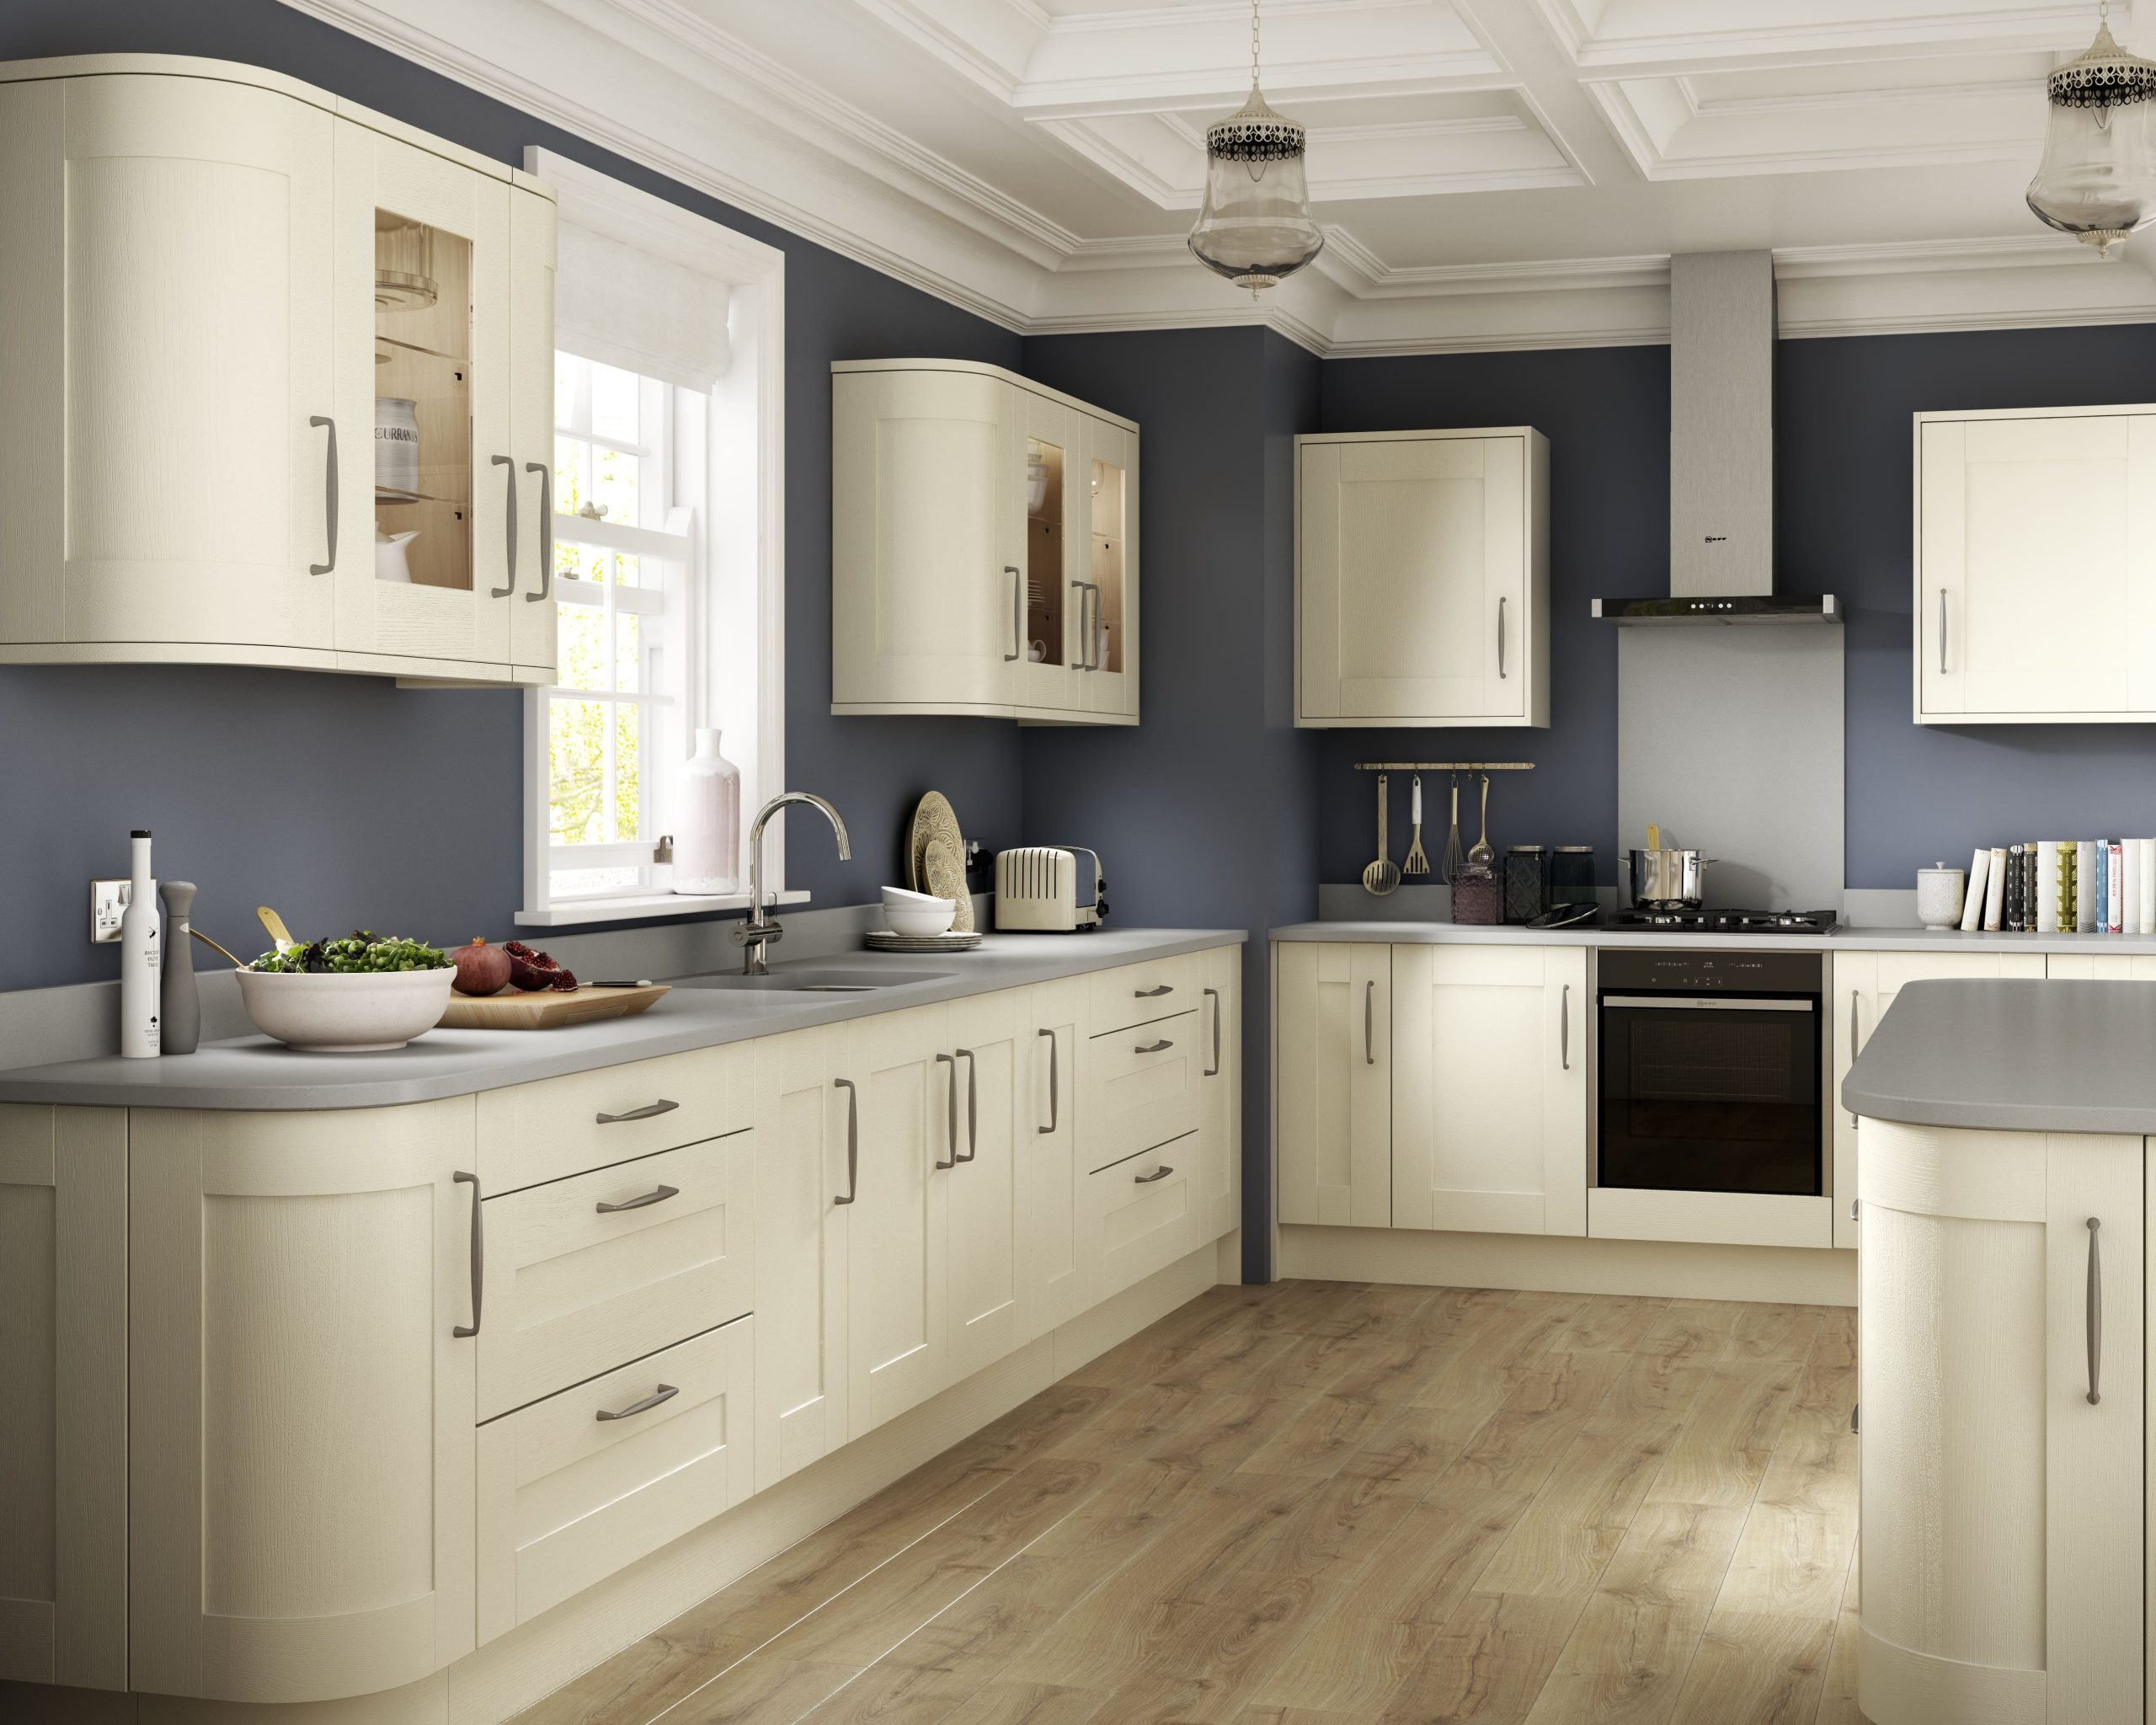 Bring 'Classic Blue' into your kitchen